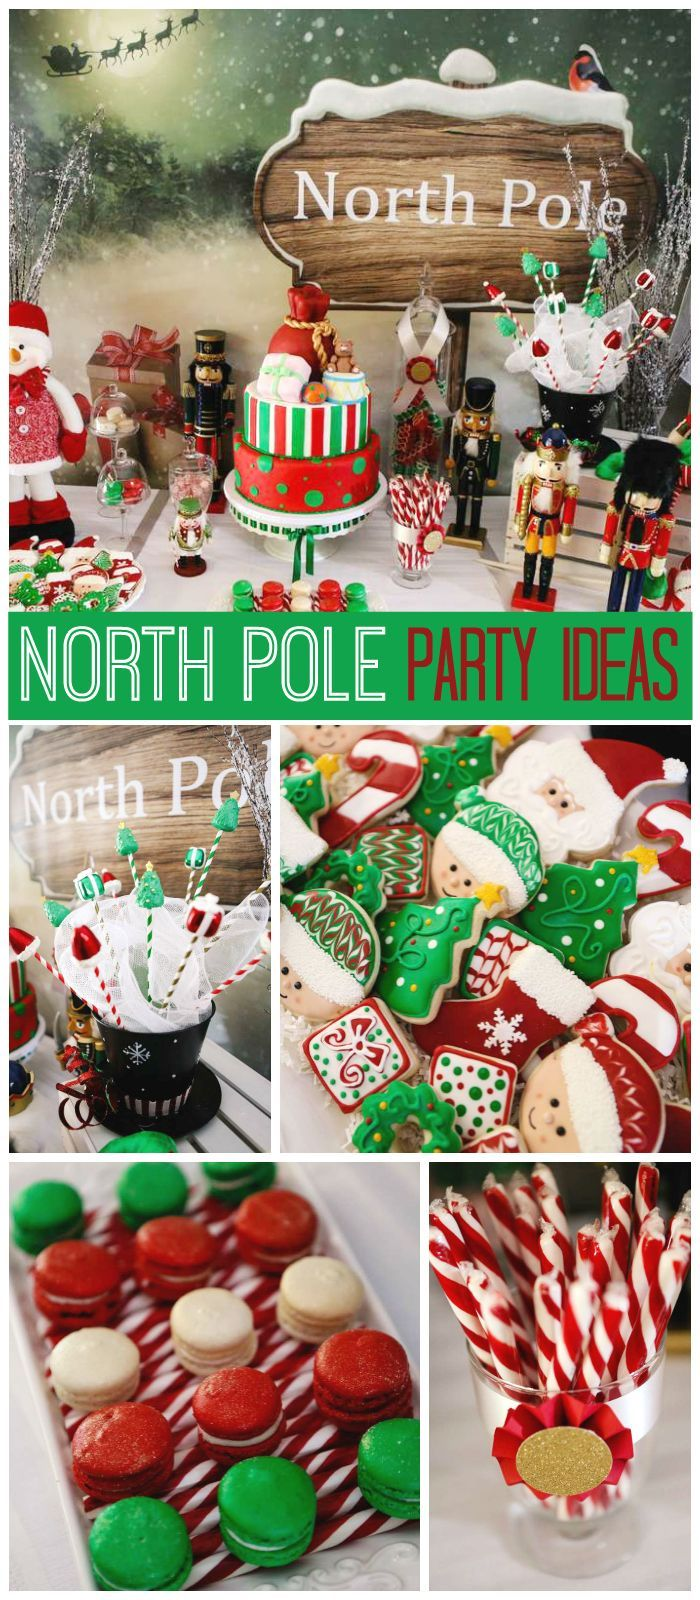 A green and red North Pole Christmas party with a Santa's